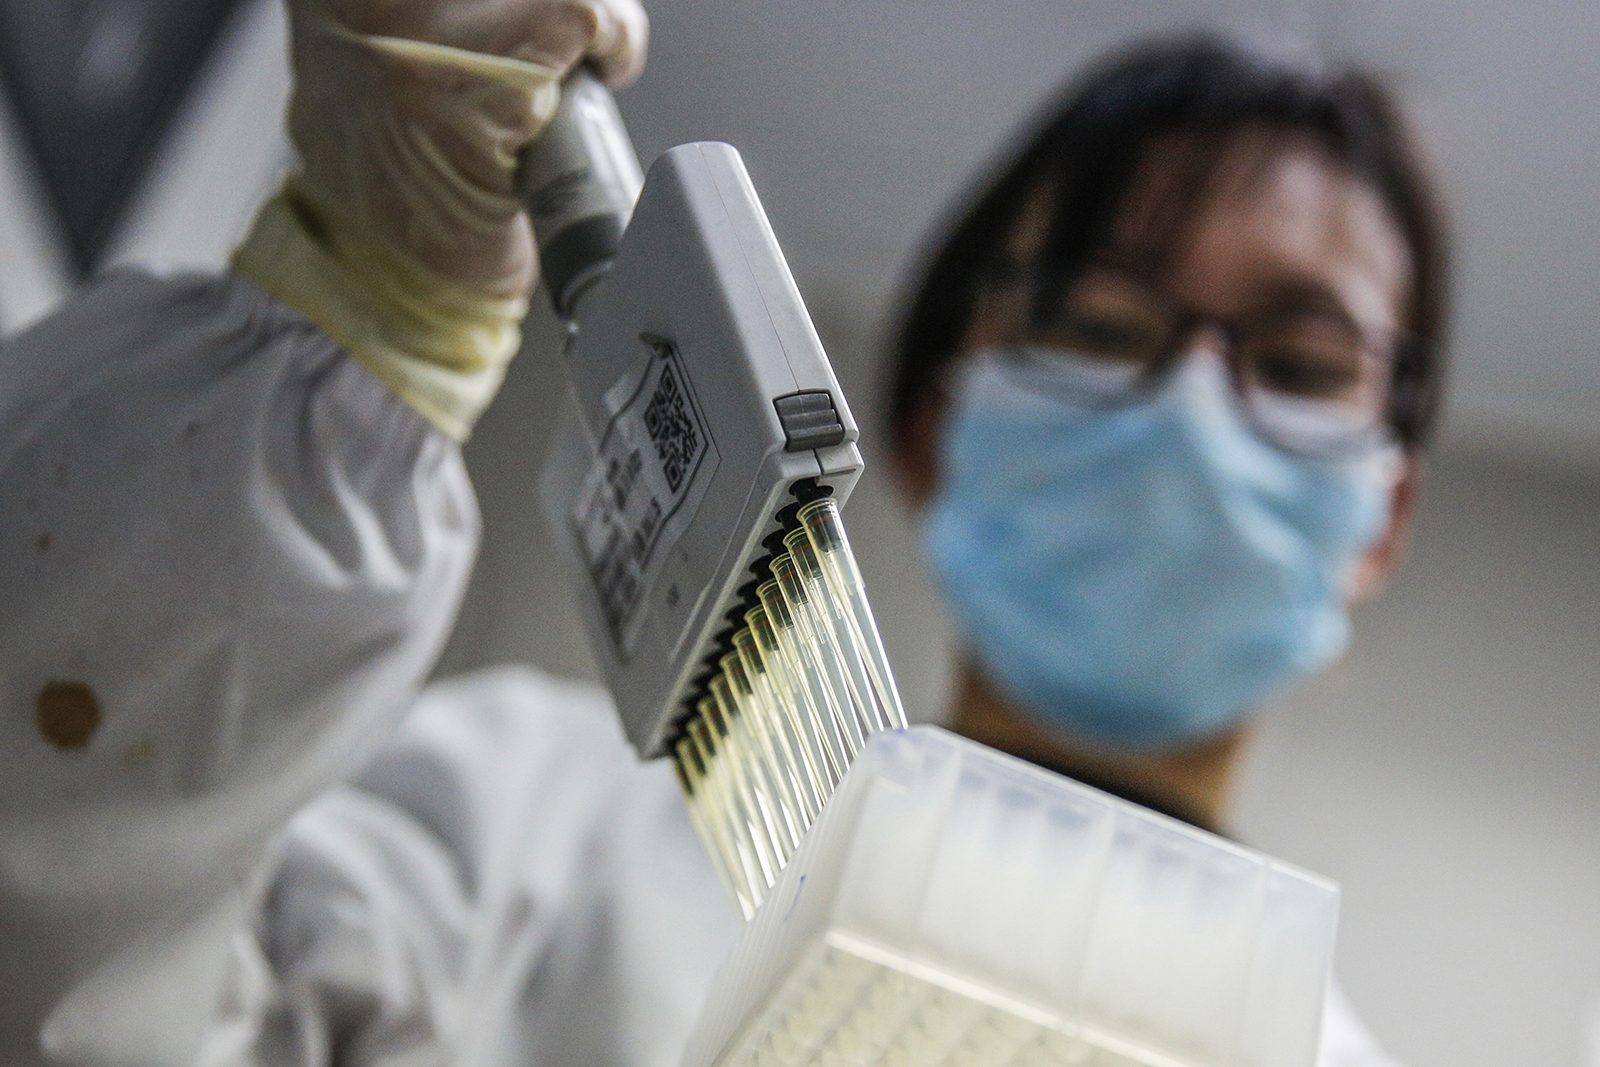 A staff member tests samples of inactivated Covid-19 vaccine at a Sinovac Biotech lab in Beijing on March 16.